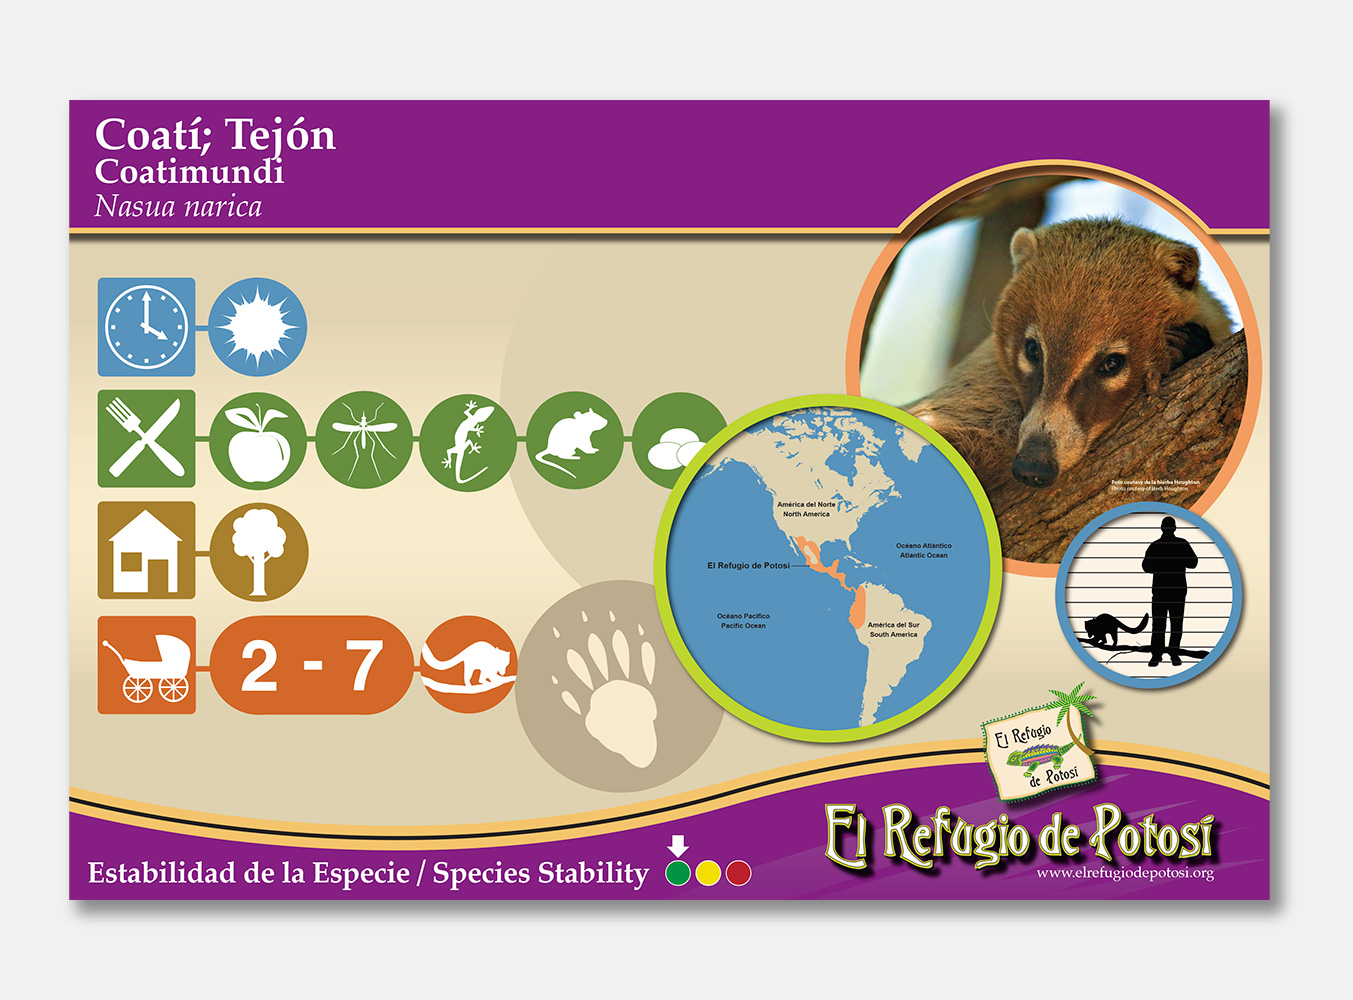 Graphic: Animal Identification signage for El Refugio de Potosi by Cameron Kaseberg